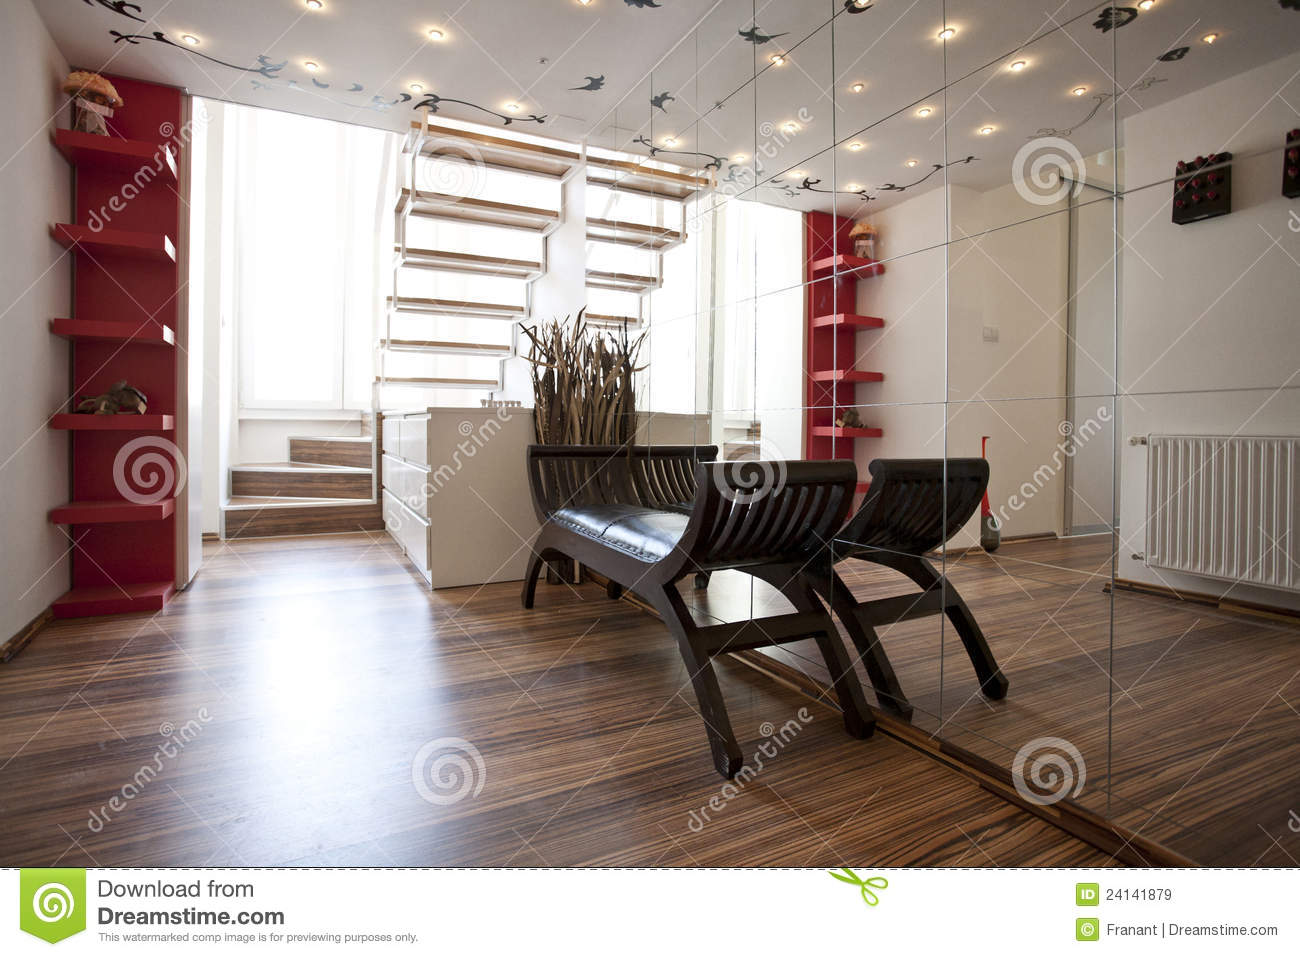 Home lobby interior design royalty free stock images for Interior designs photo